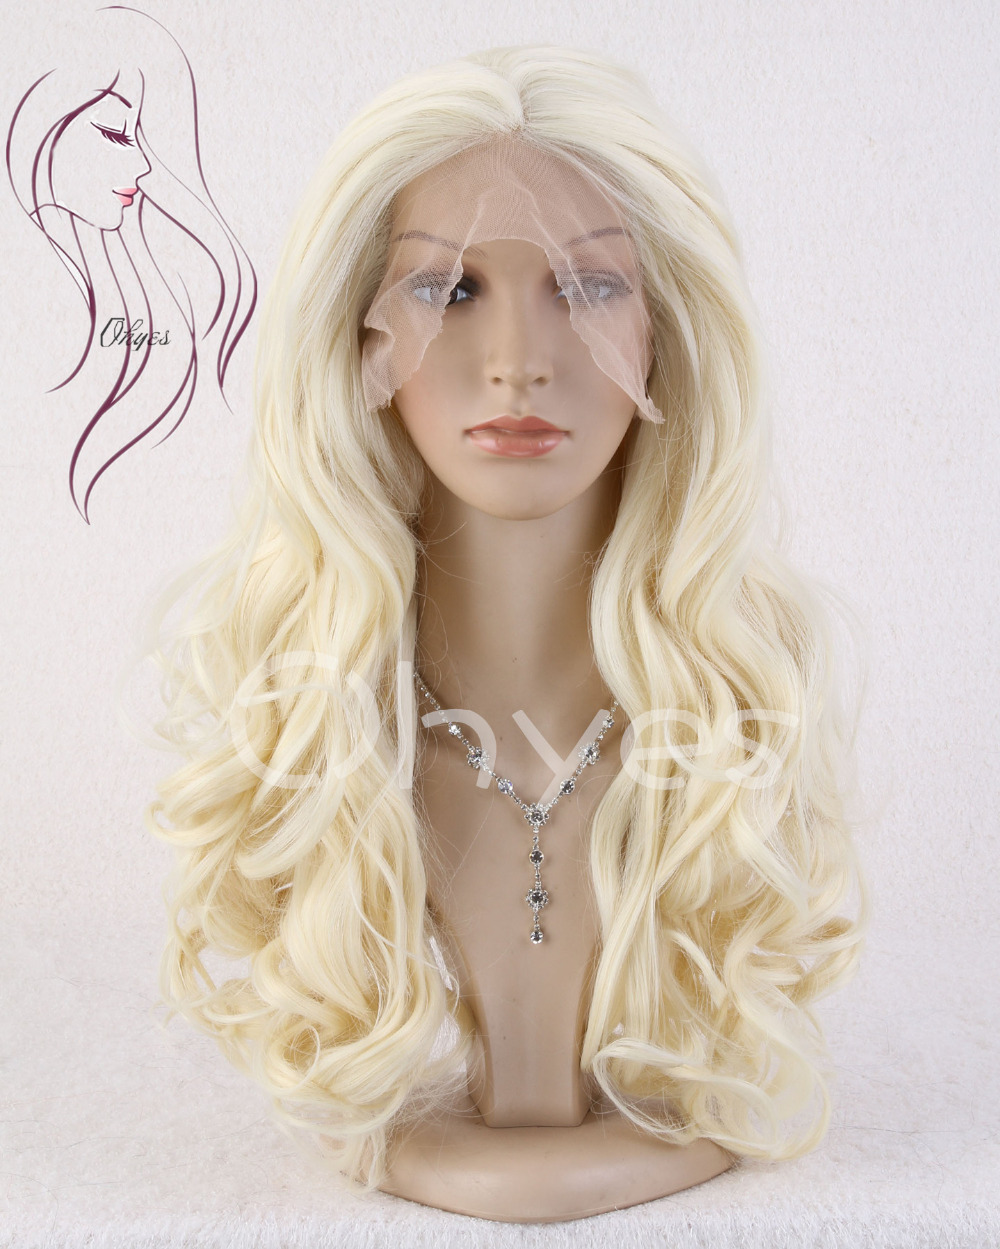 Ohyes 2015 New Arrival 26 Long Curly Wavy Golden Blonde Mixed Light Blonde Lace Front Wig/Wigs<br><br>Aliexpress